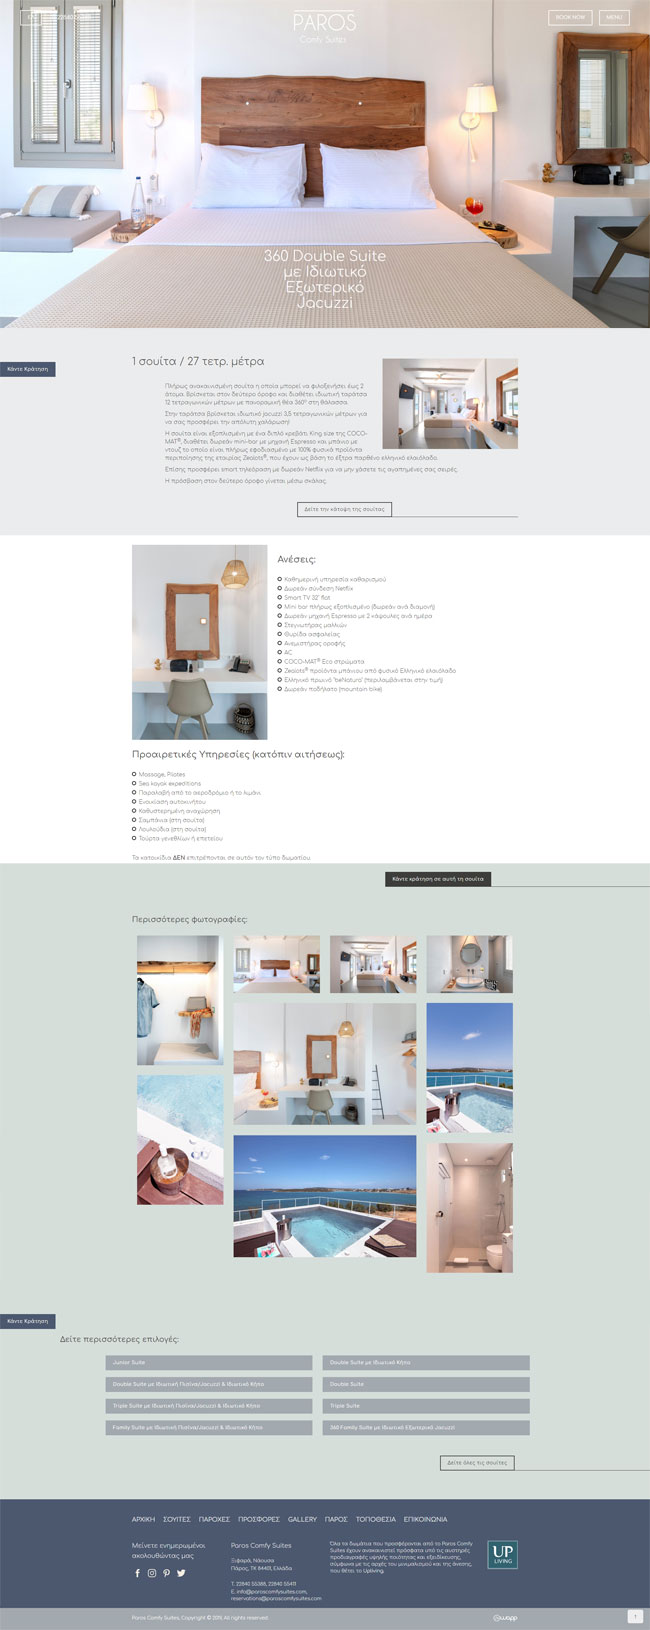 Responsive website for Paros Comfy Suites in Paros